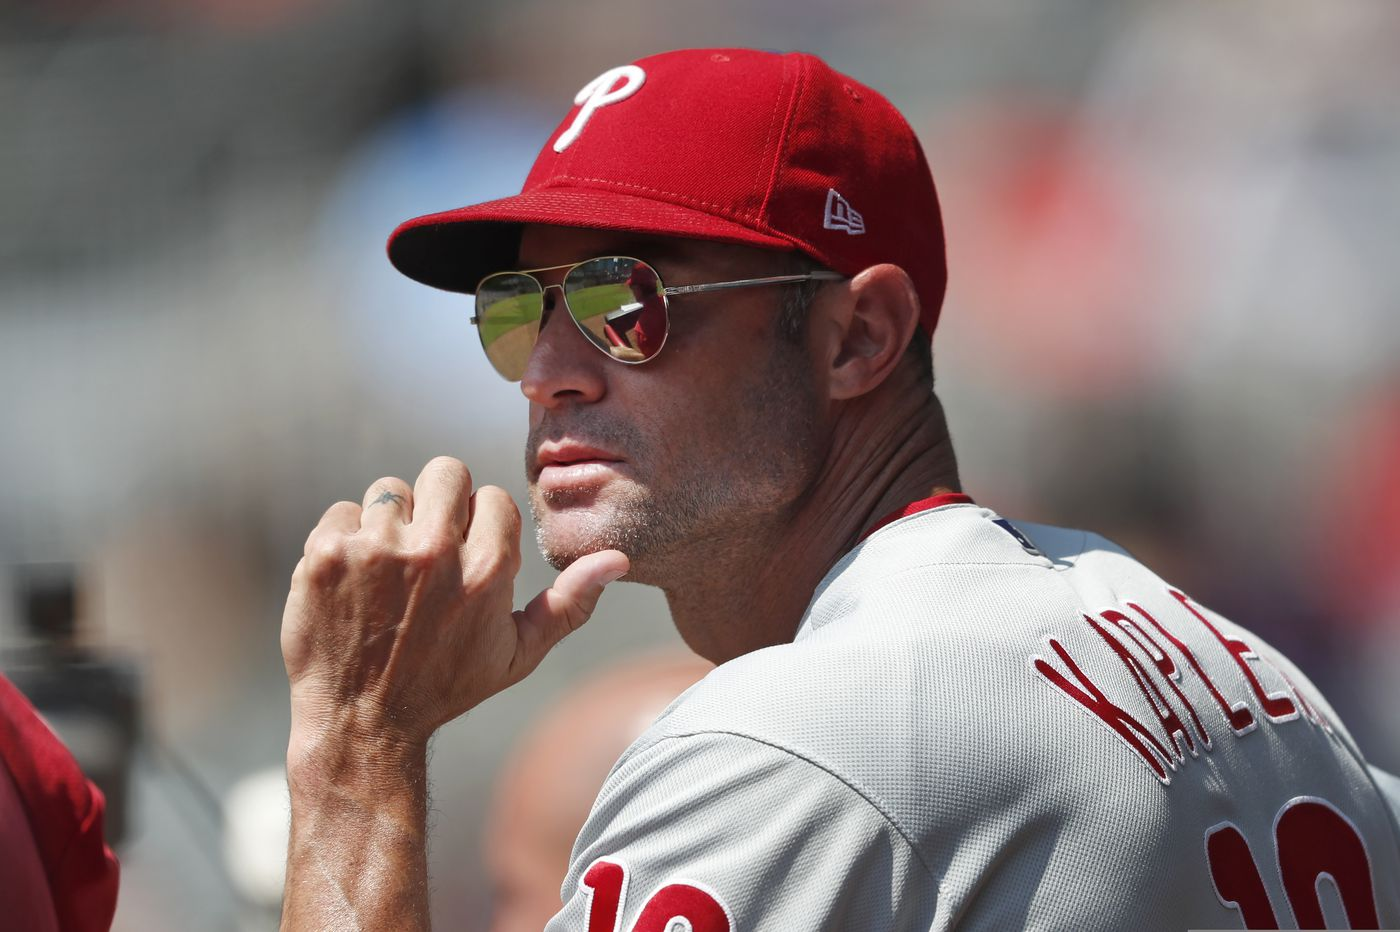 Phillies' wild-card hopes dim after Drew Smyly allows four early runs in loss to Cleveland